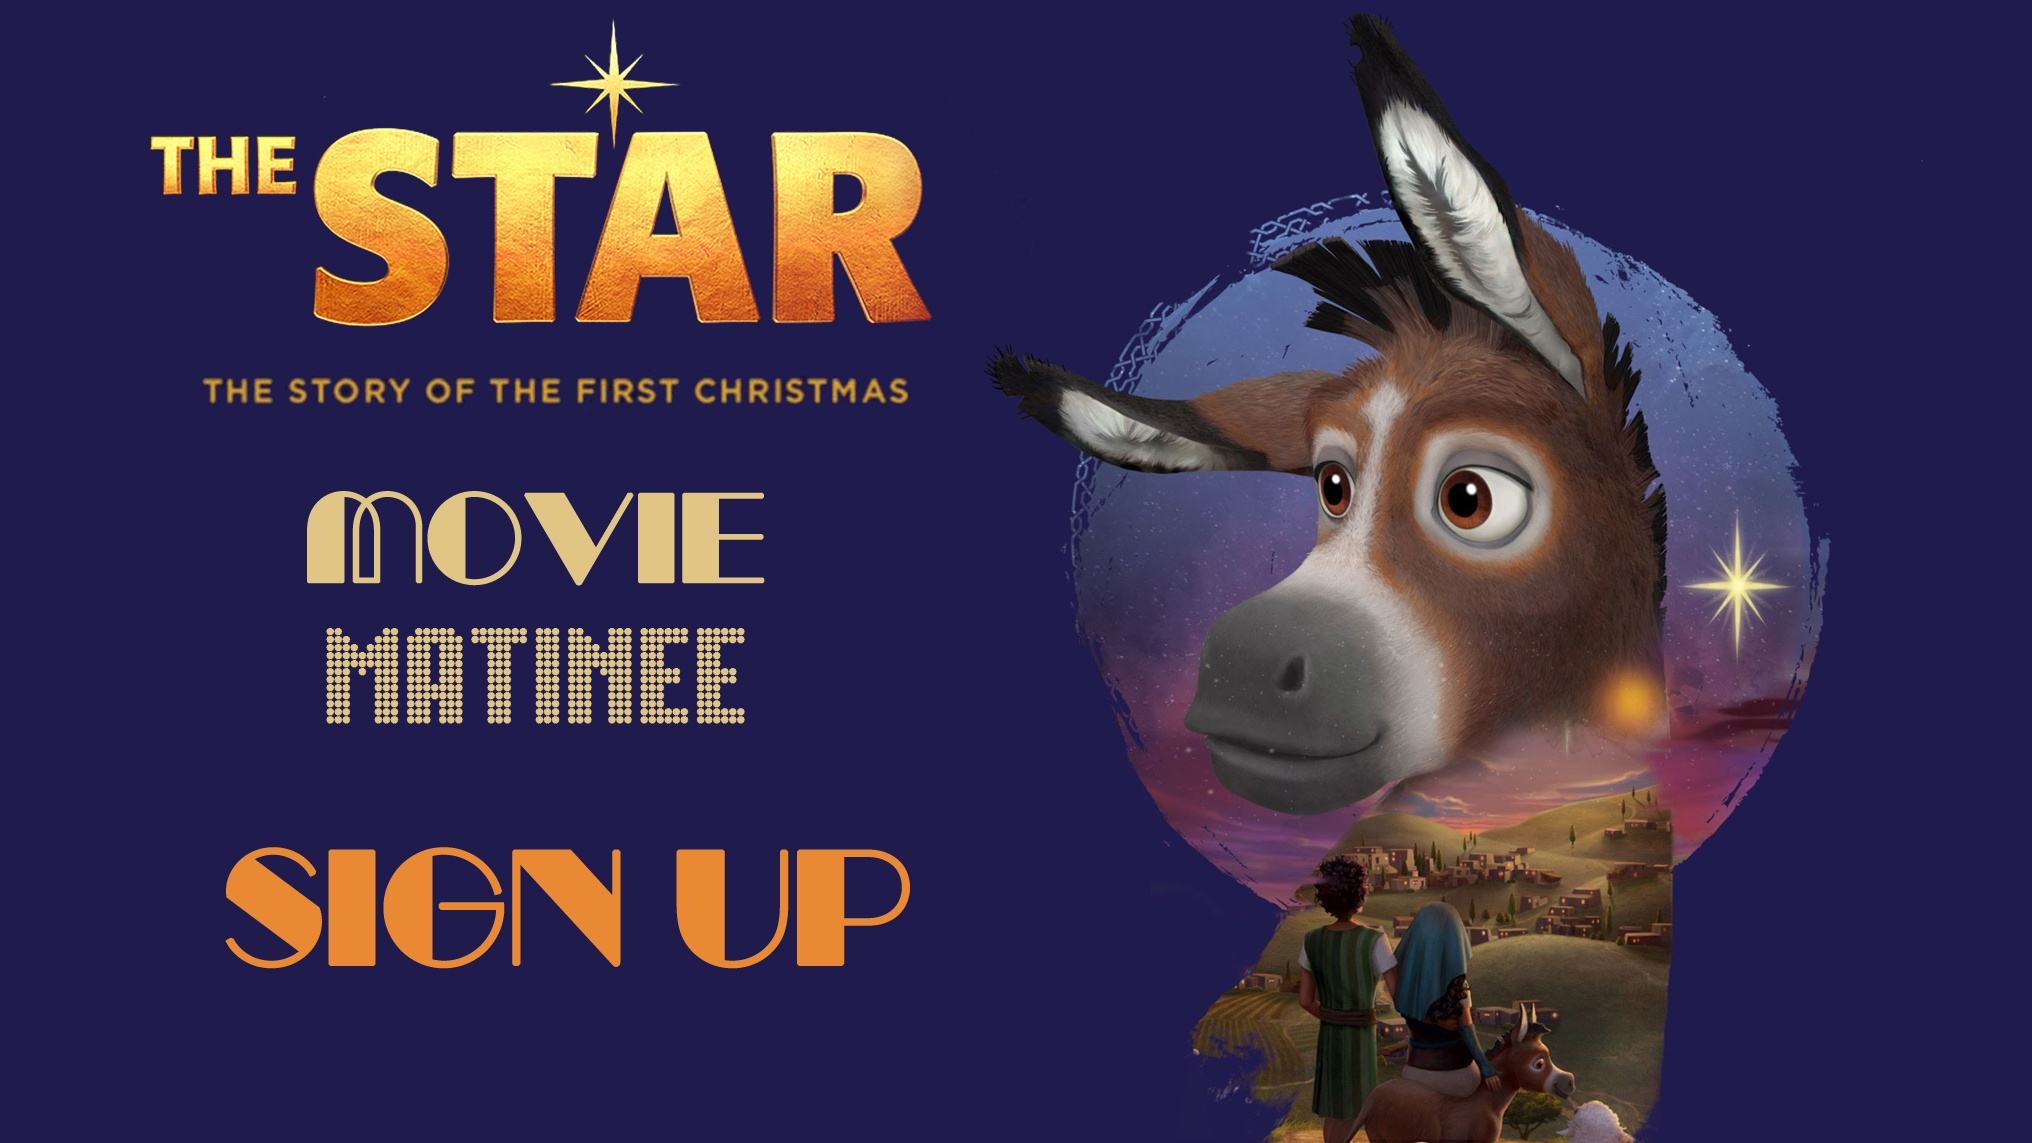 TheStarMovie_webandkiosk